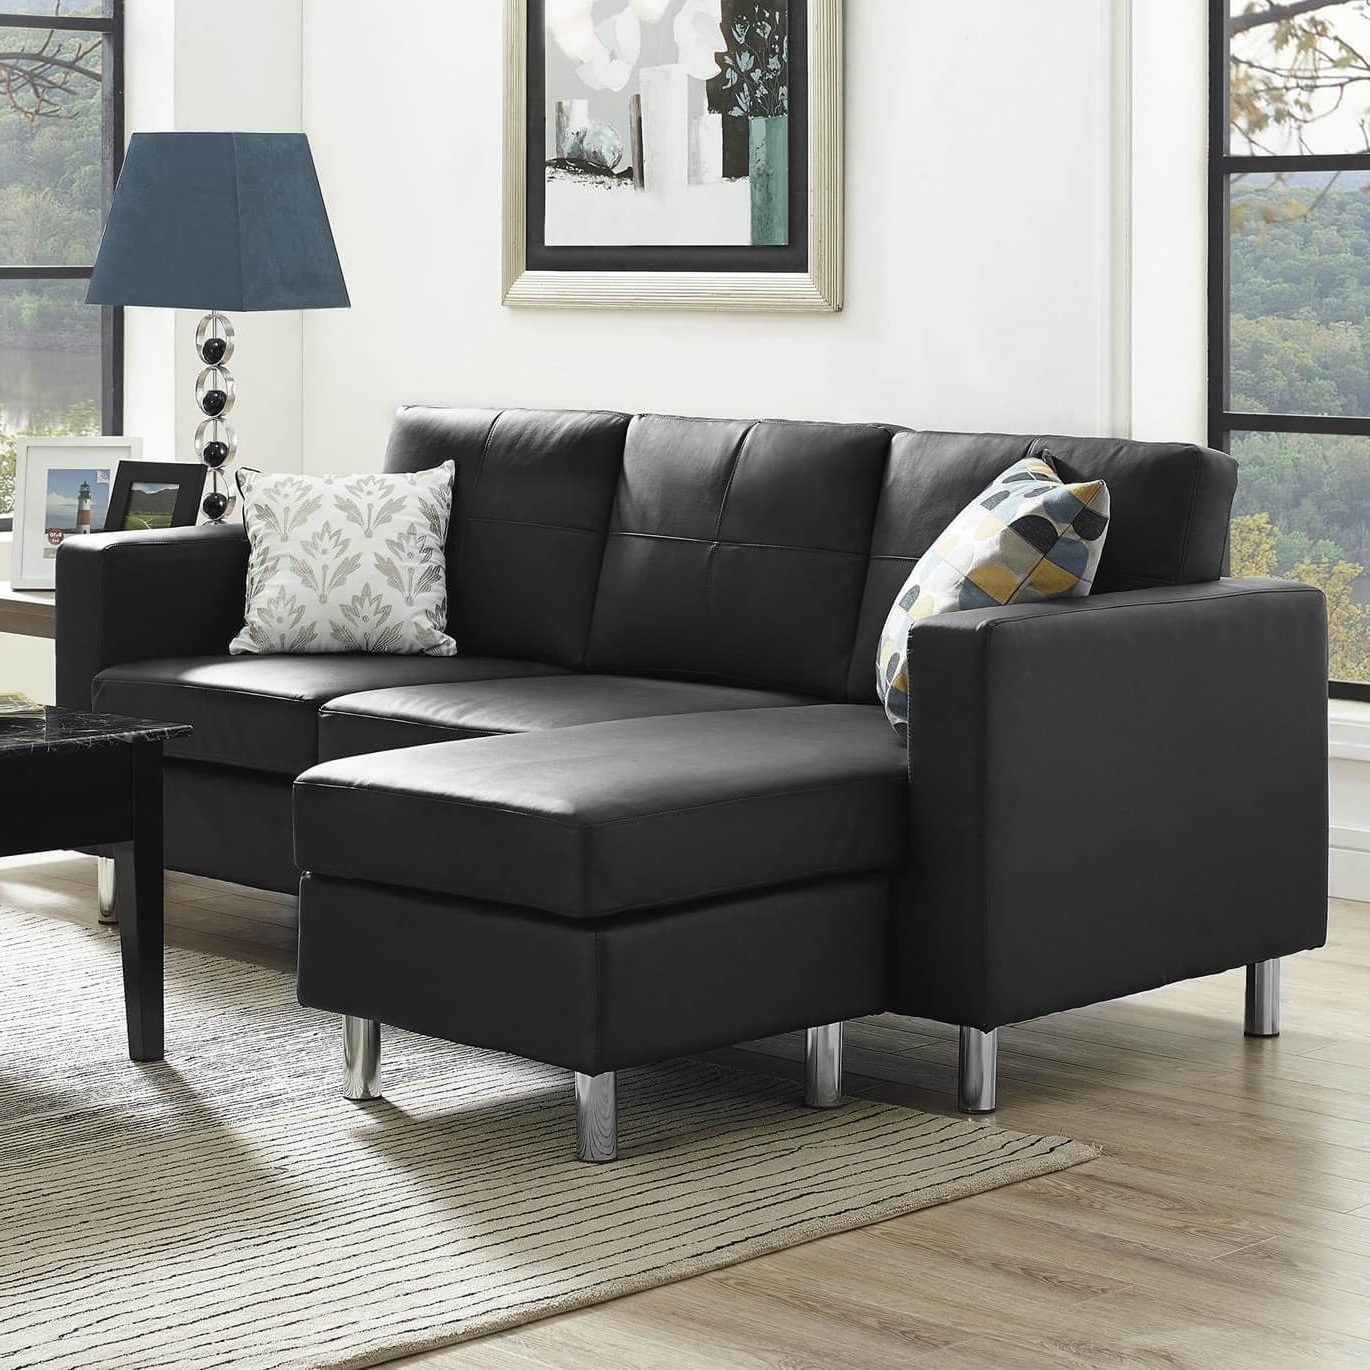 Recent Sectional Sofas Under 400 Intended For 40 Cheap Sectional Sofas Under $500 For  (View 10 of 20)